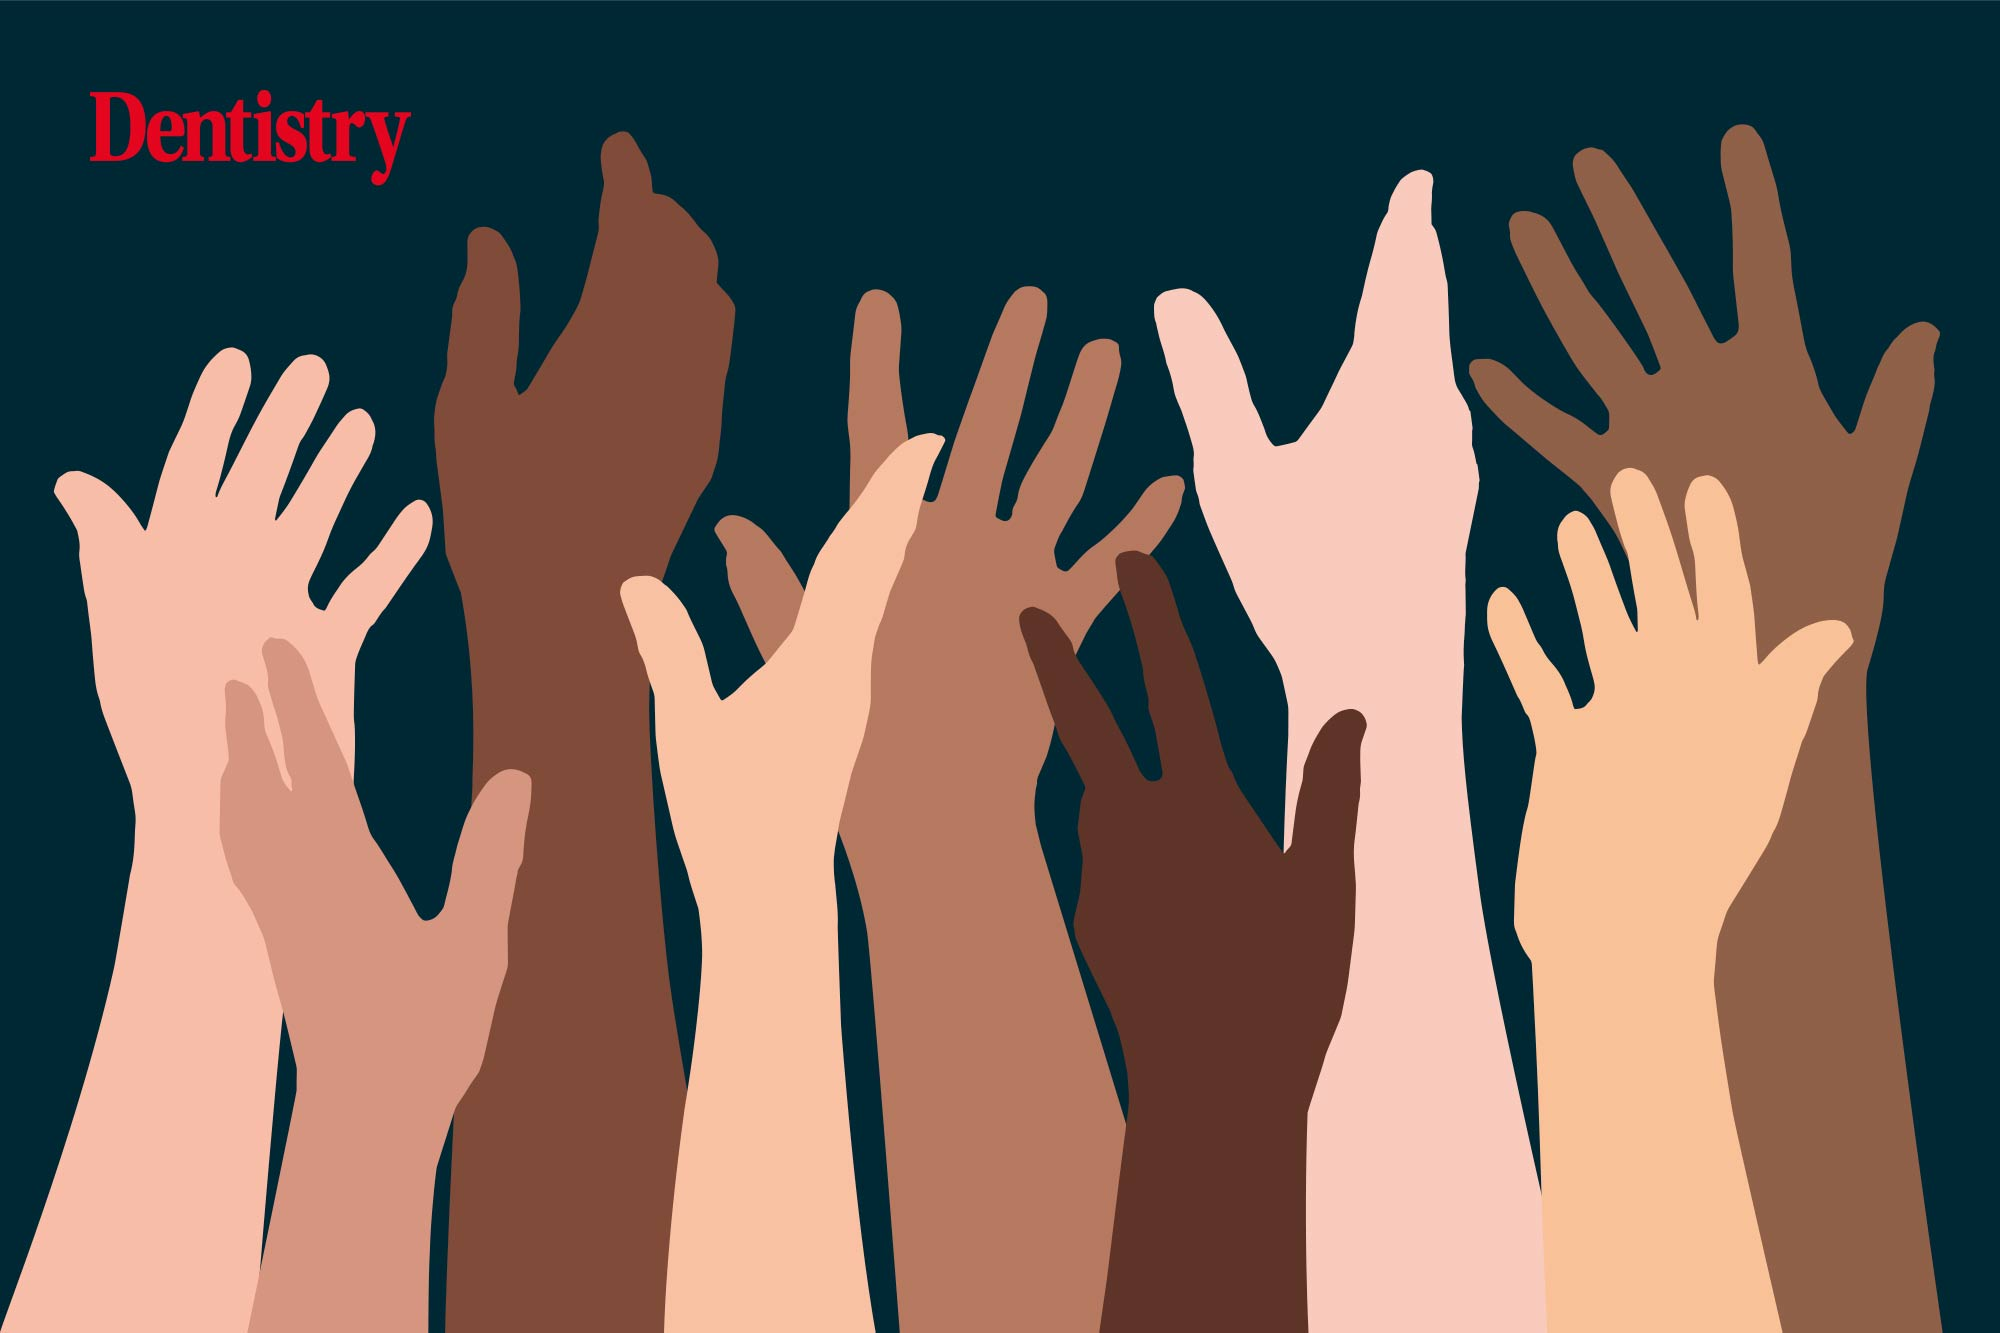 A report into racism and discrimination in dentistry has been applauded and labelled a 'vital' contribution to the discussion